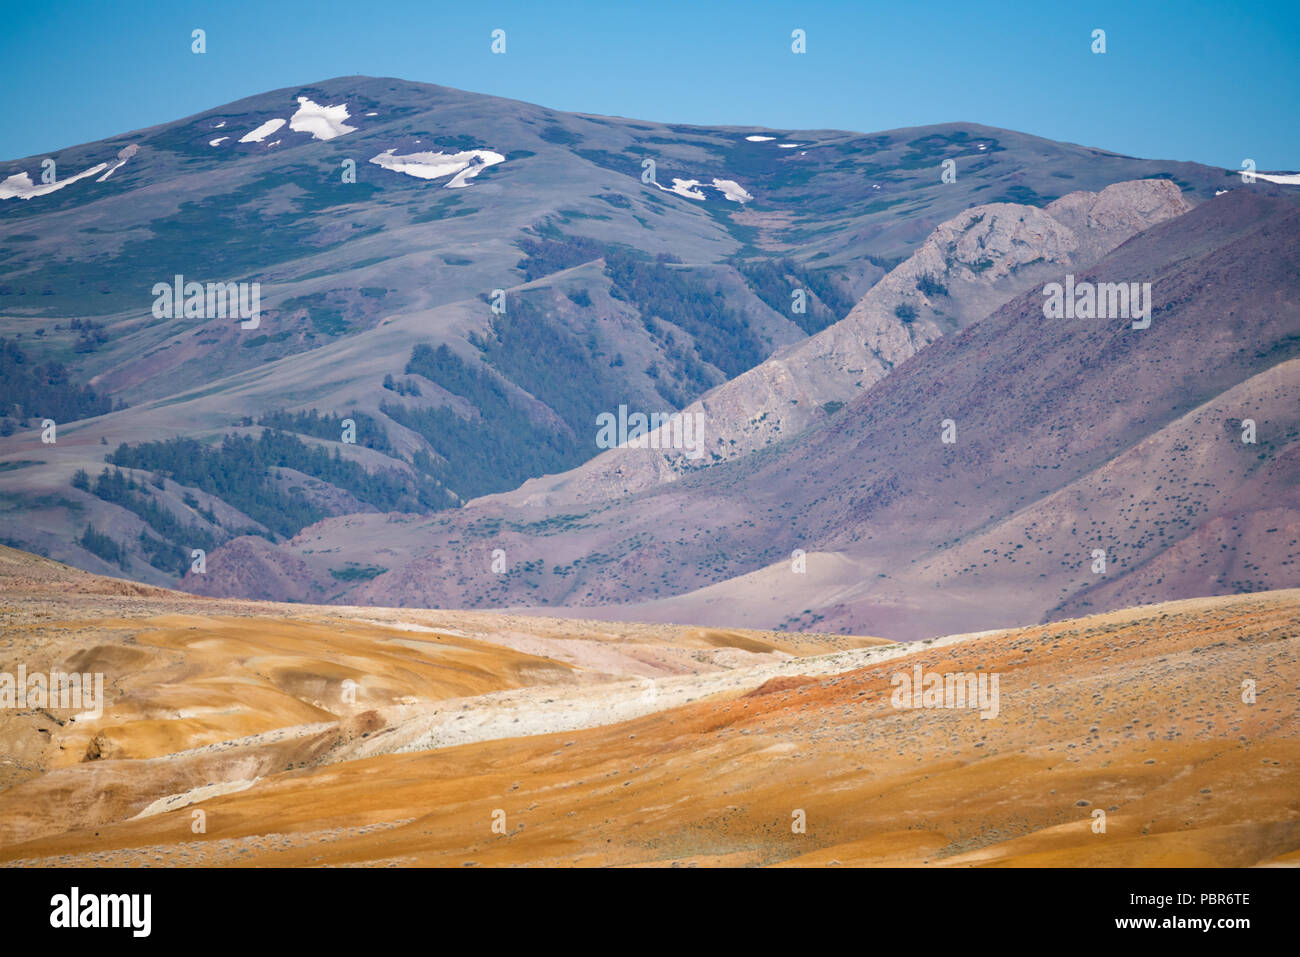 Mountain landscape, red-orange color, reminiscent of the color of the surface of the planet Mars. The Republic of Altai, Russia. - Stock Image